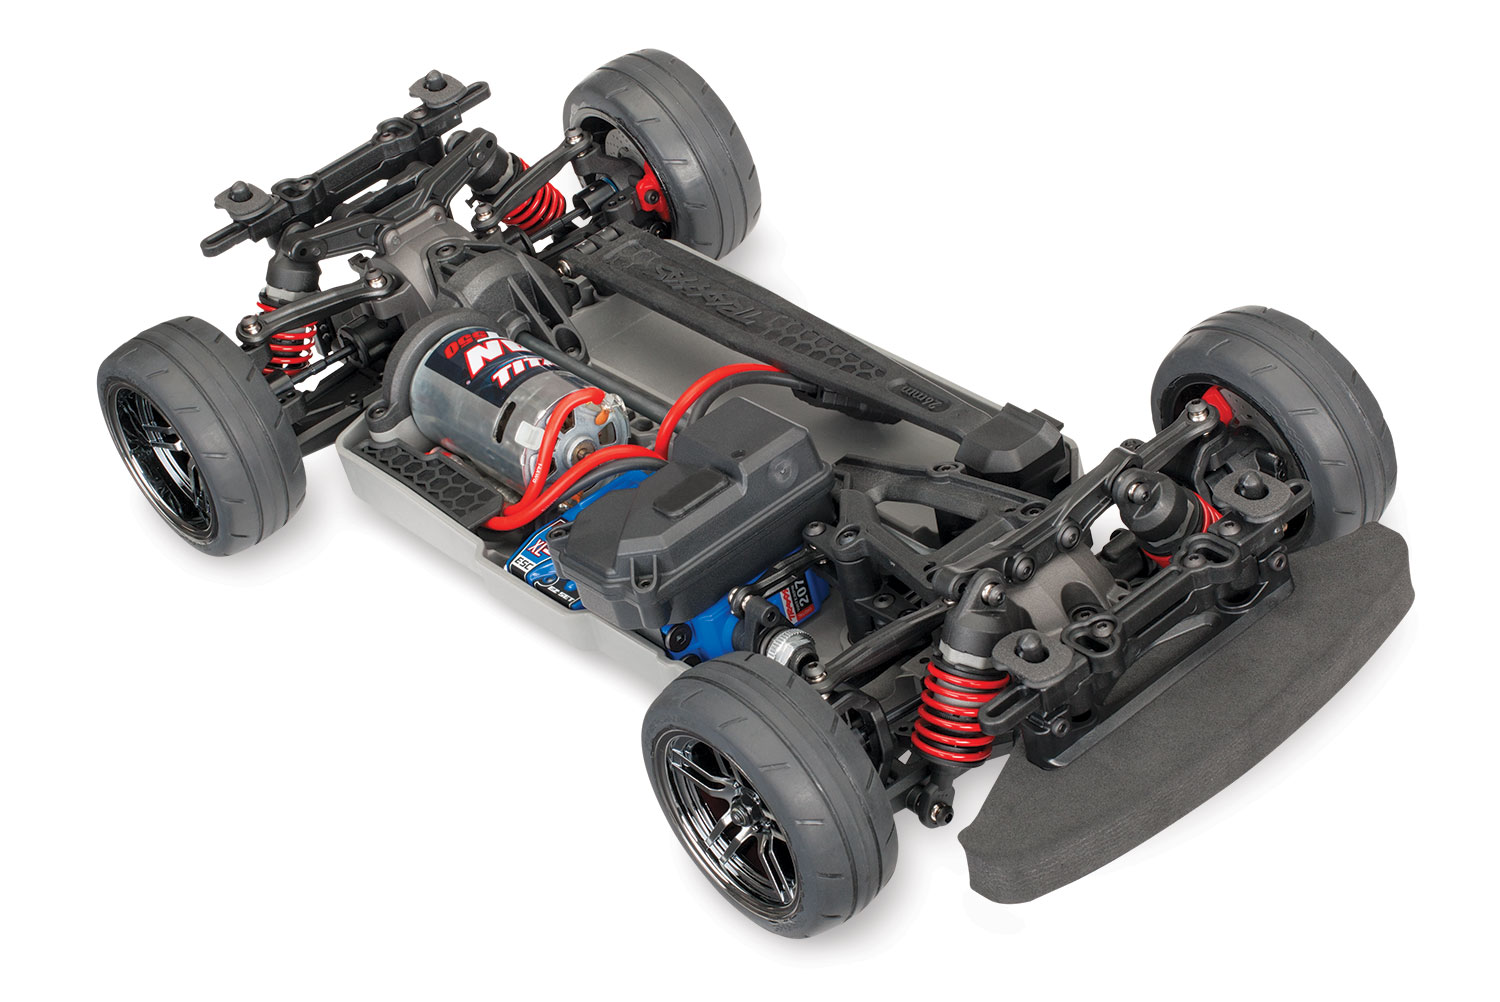 4-Tec 2.0 Chassis